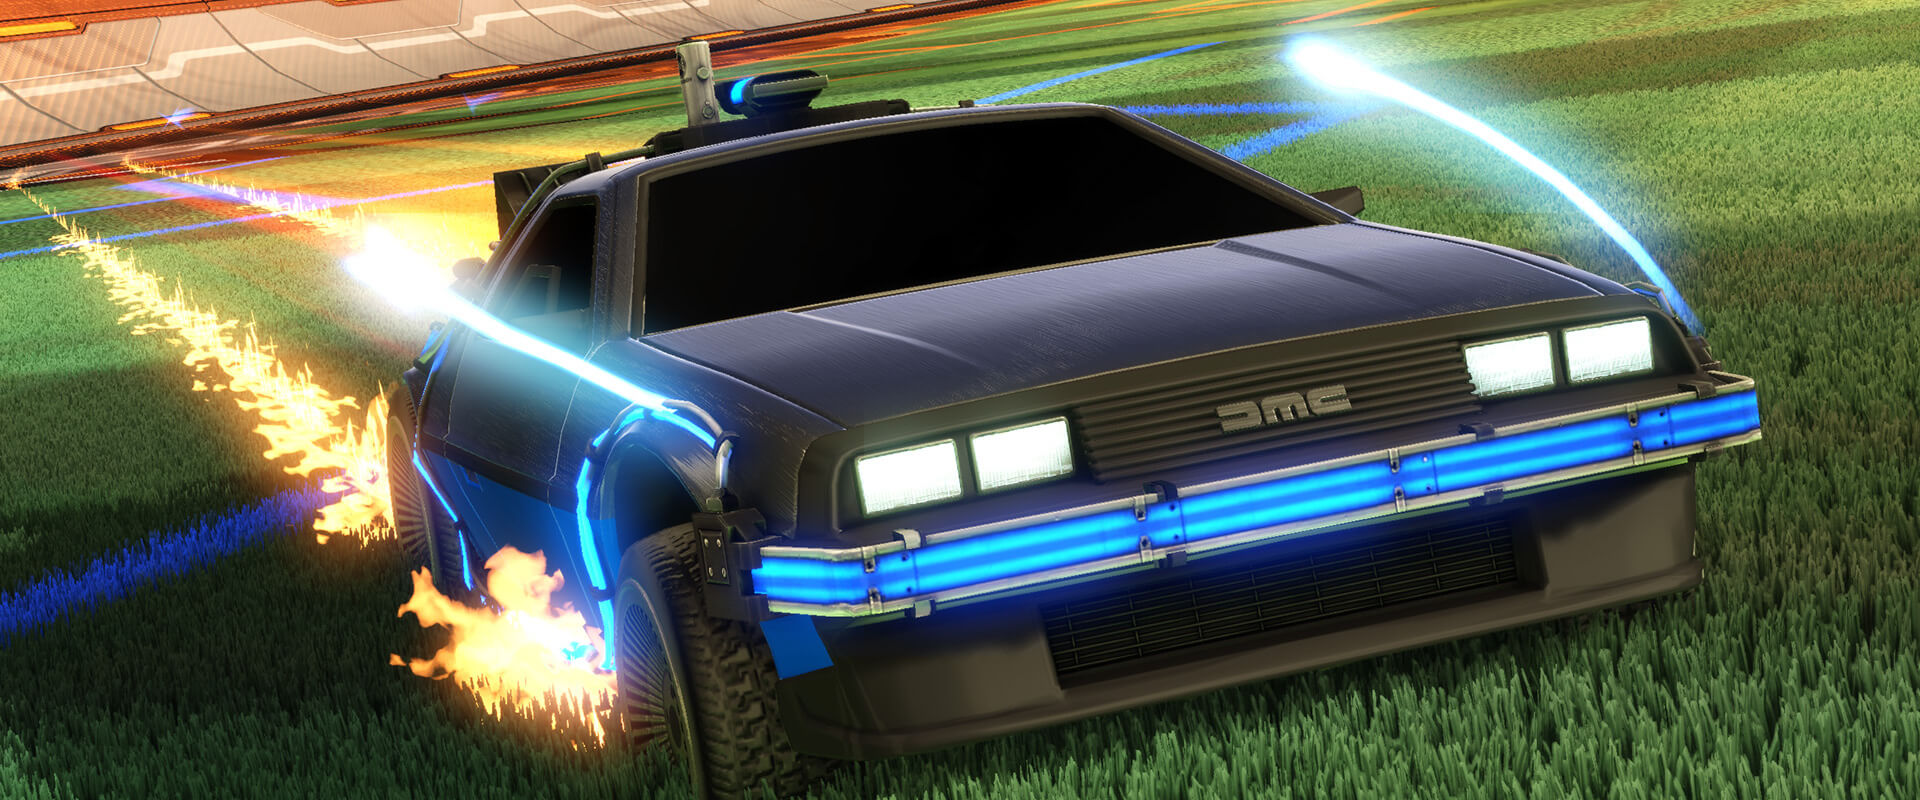 http://www.universalbranddevelopment.com/storage/games-rocket-league-banner-598e2c5fe98e7.jpeg